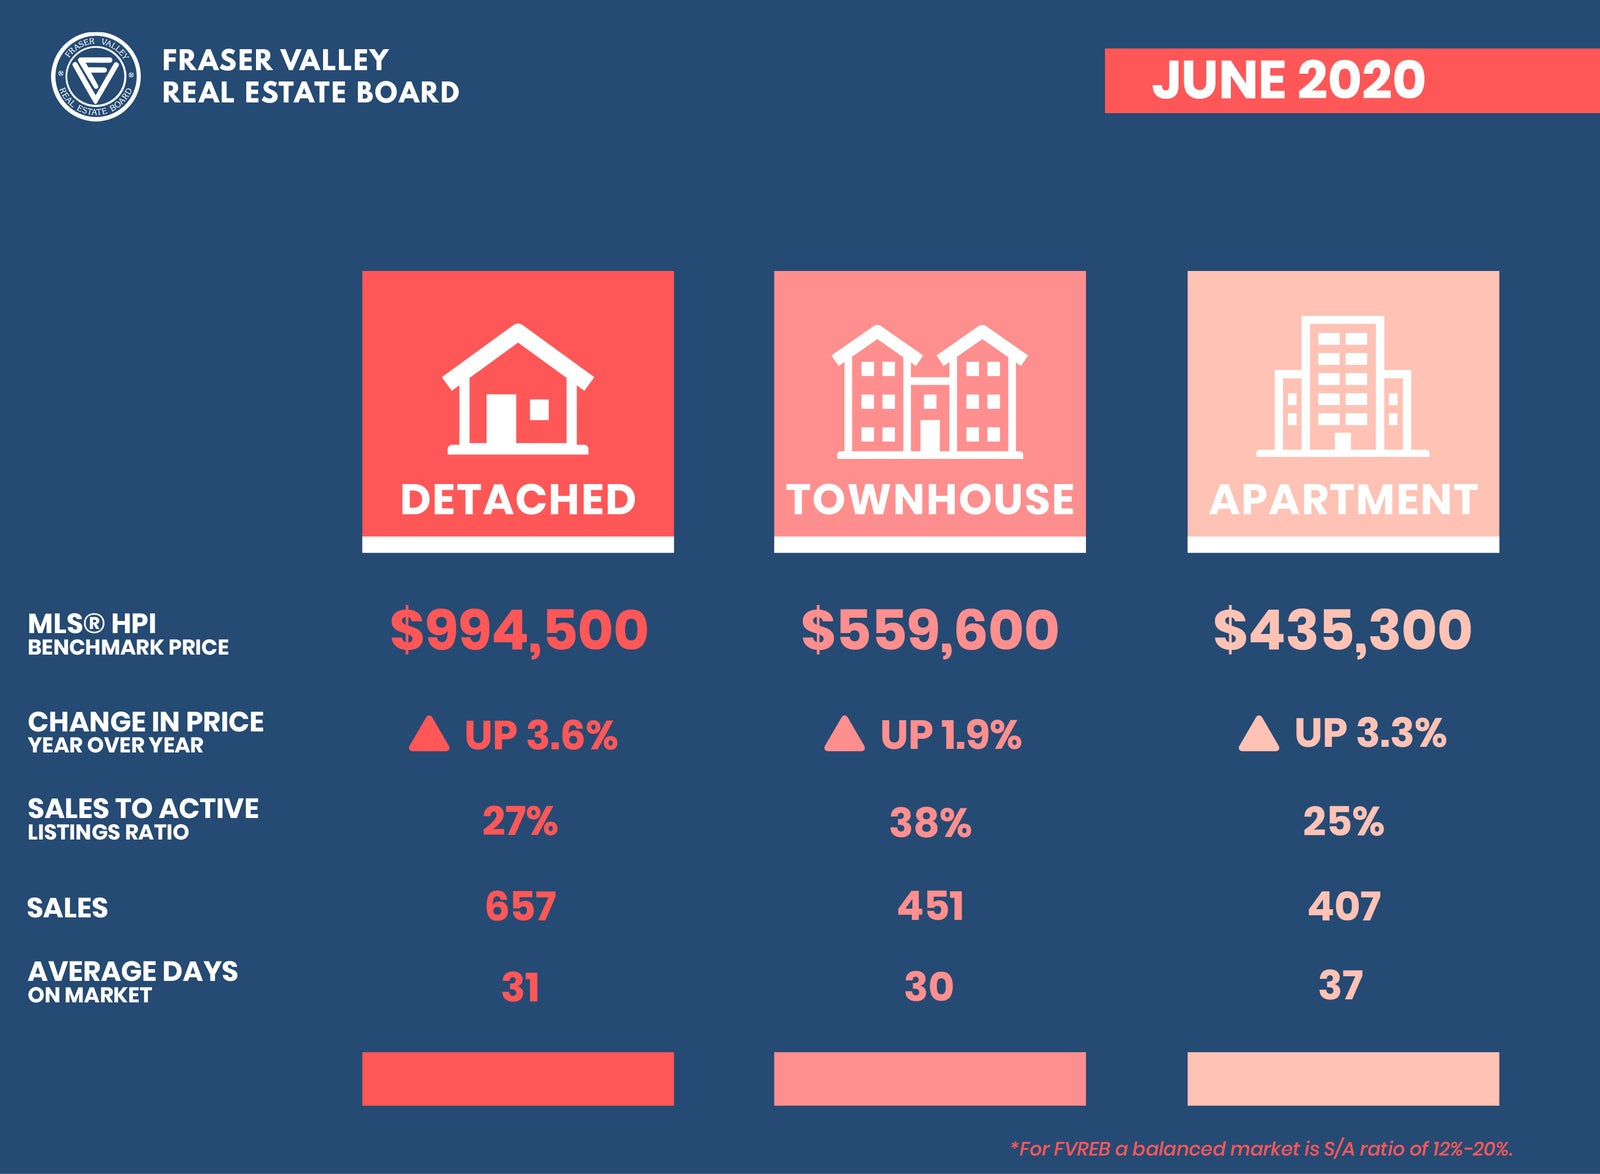 MLS® HPI Benchmark Price Activity for June 2020